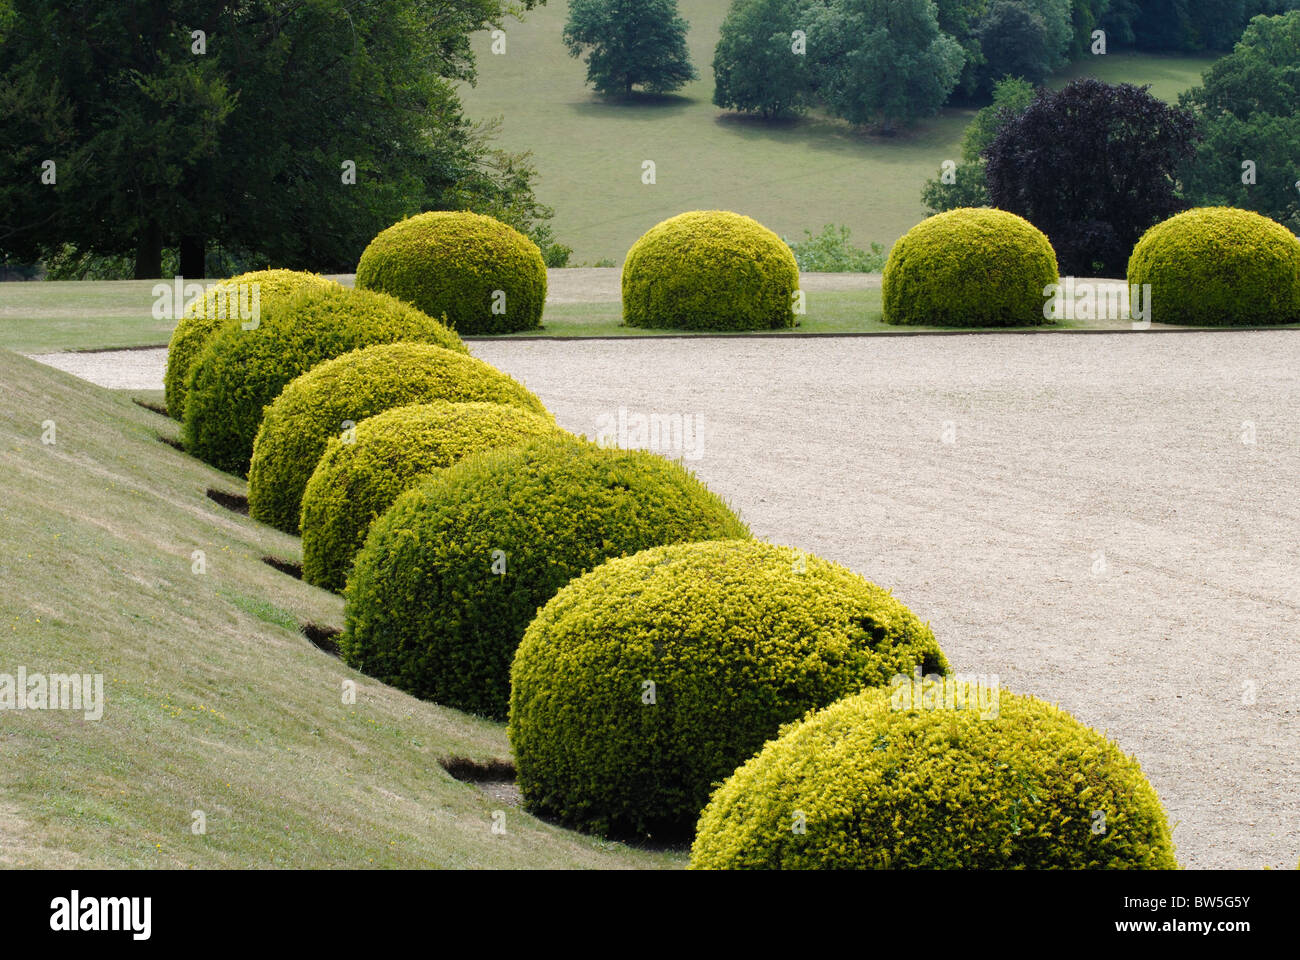 Rounded topiary evergreen Yew bushes in an English country garden. Surrey. England - Stock Image